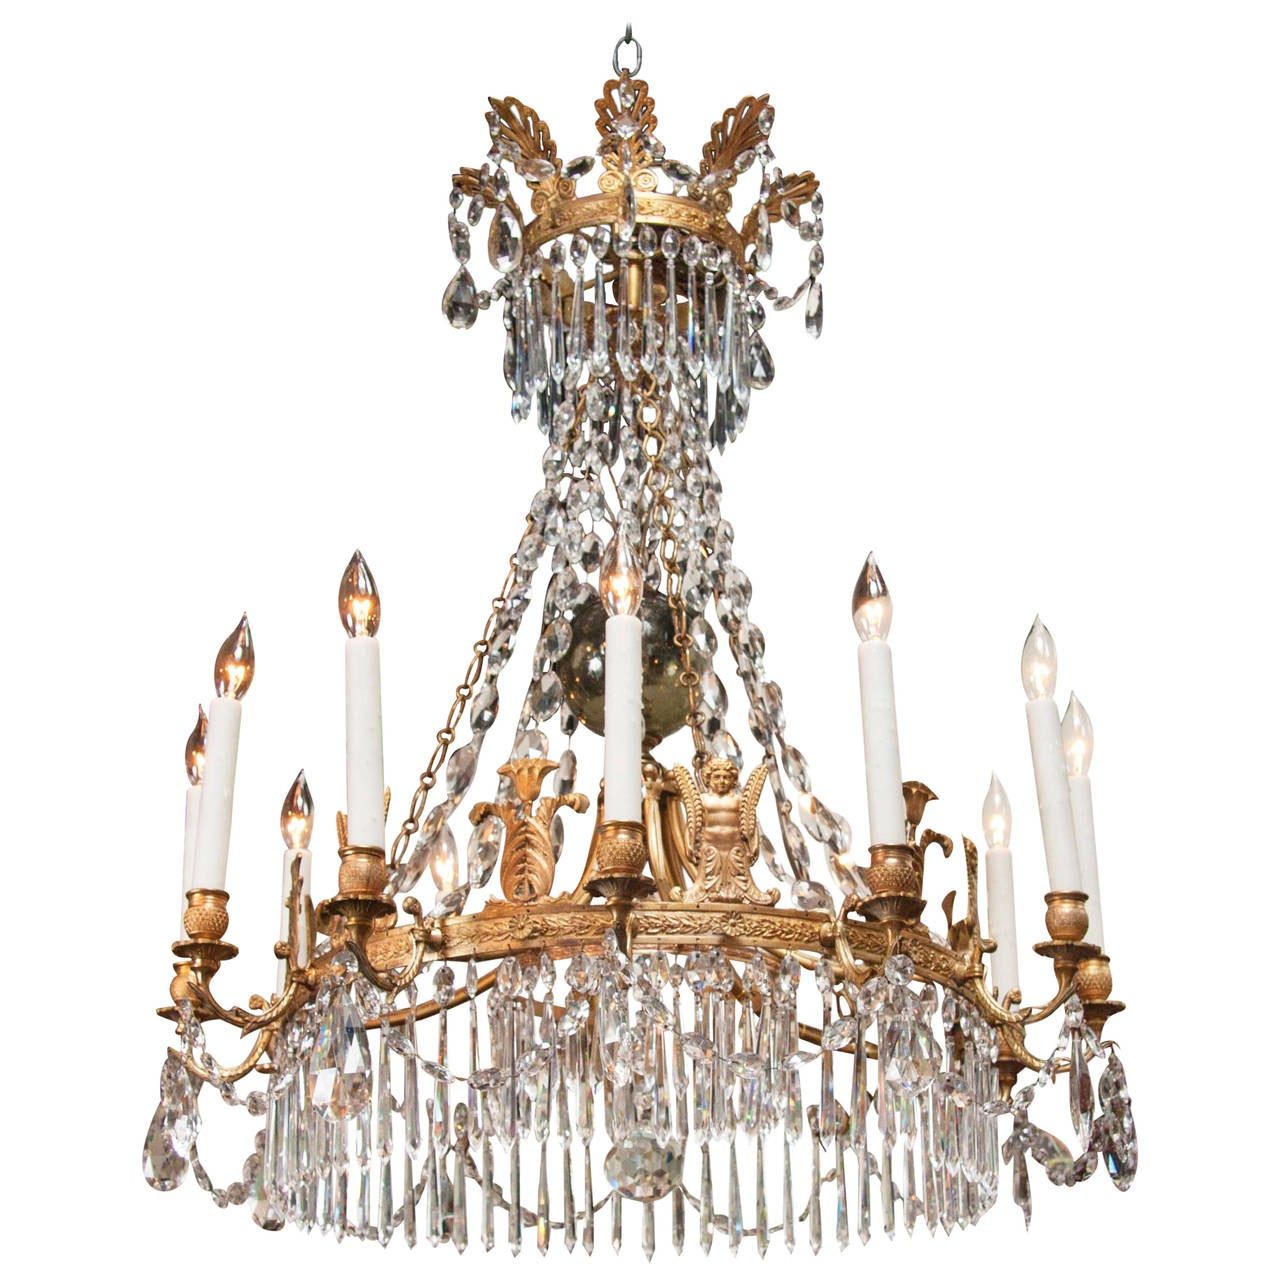 Russian Neoclassical Empire Twelve-Light Chandelier For Sale at ...